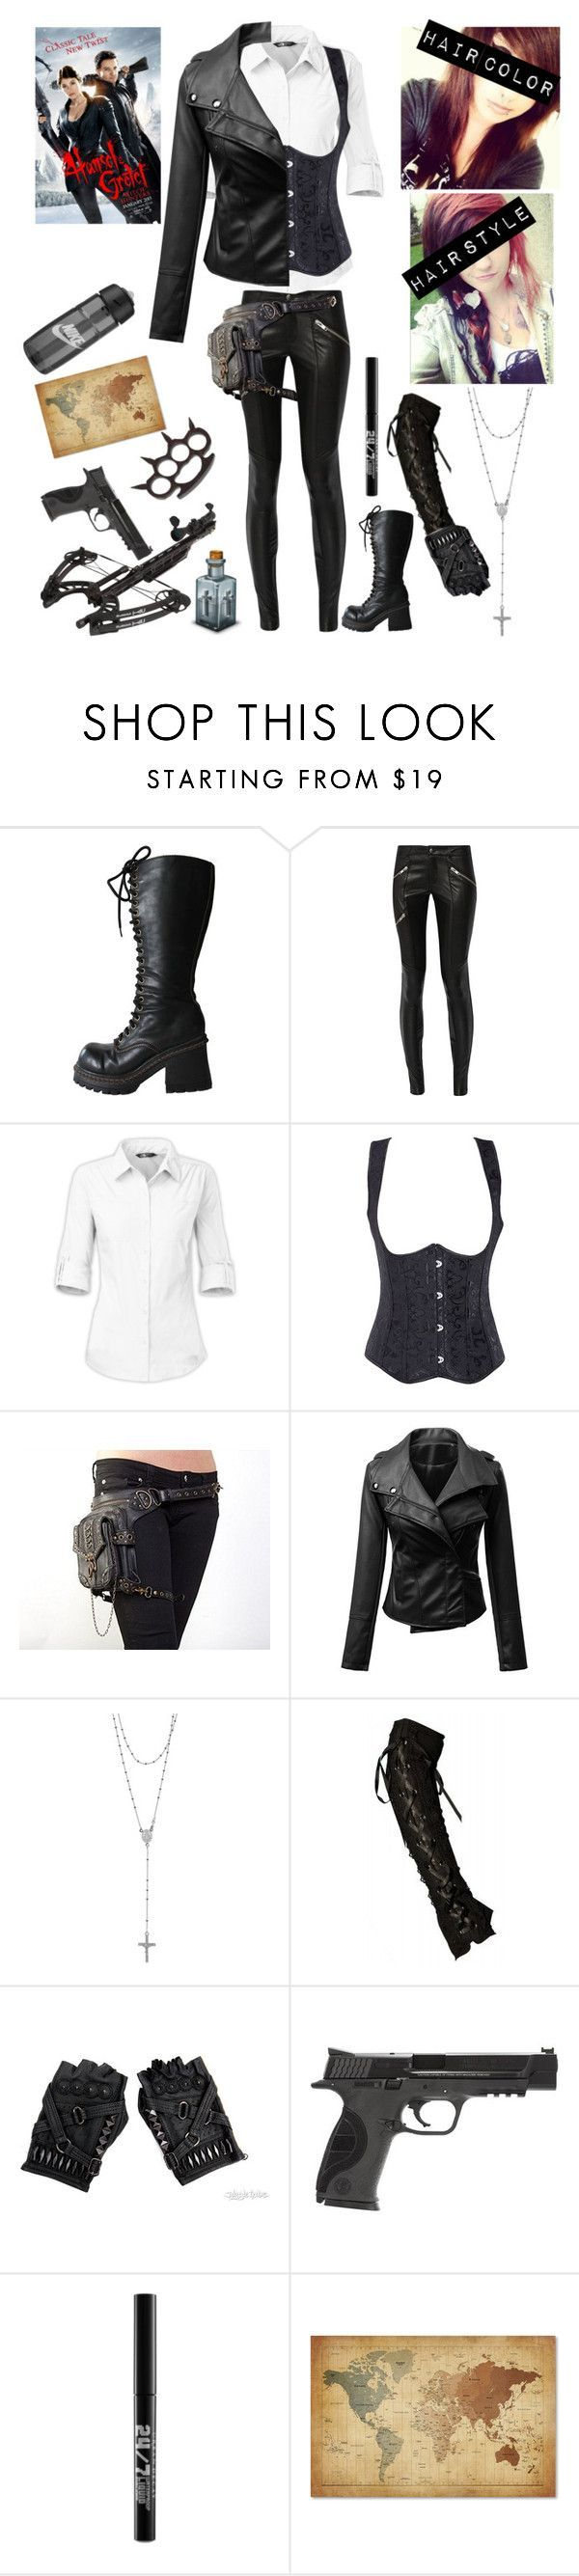 """My 'Hansel and Gretel: Witch Hunters' OC #1 (Hunter)"" by katlanacross ❤ liked on Polyvore featuring Mason by Michelle Mason, The North Face, Tressa, Smith & Wesson, Urban Decay, Trademark Fine Art, NIKE, women's clothing, women's fashion and women"